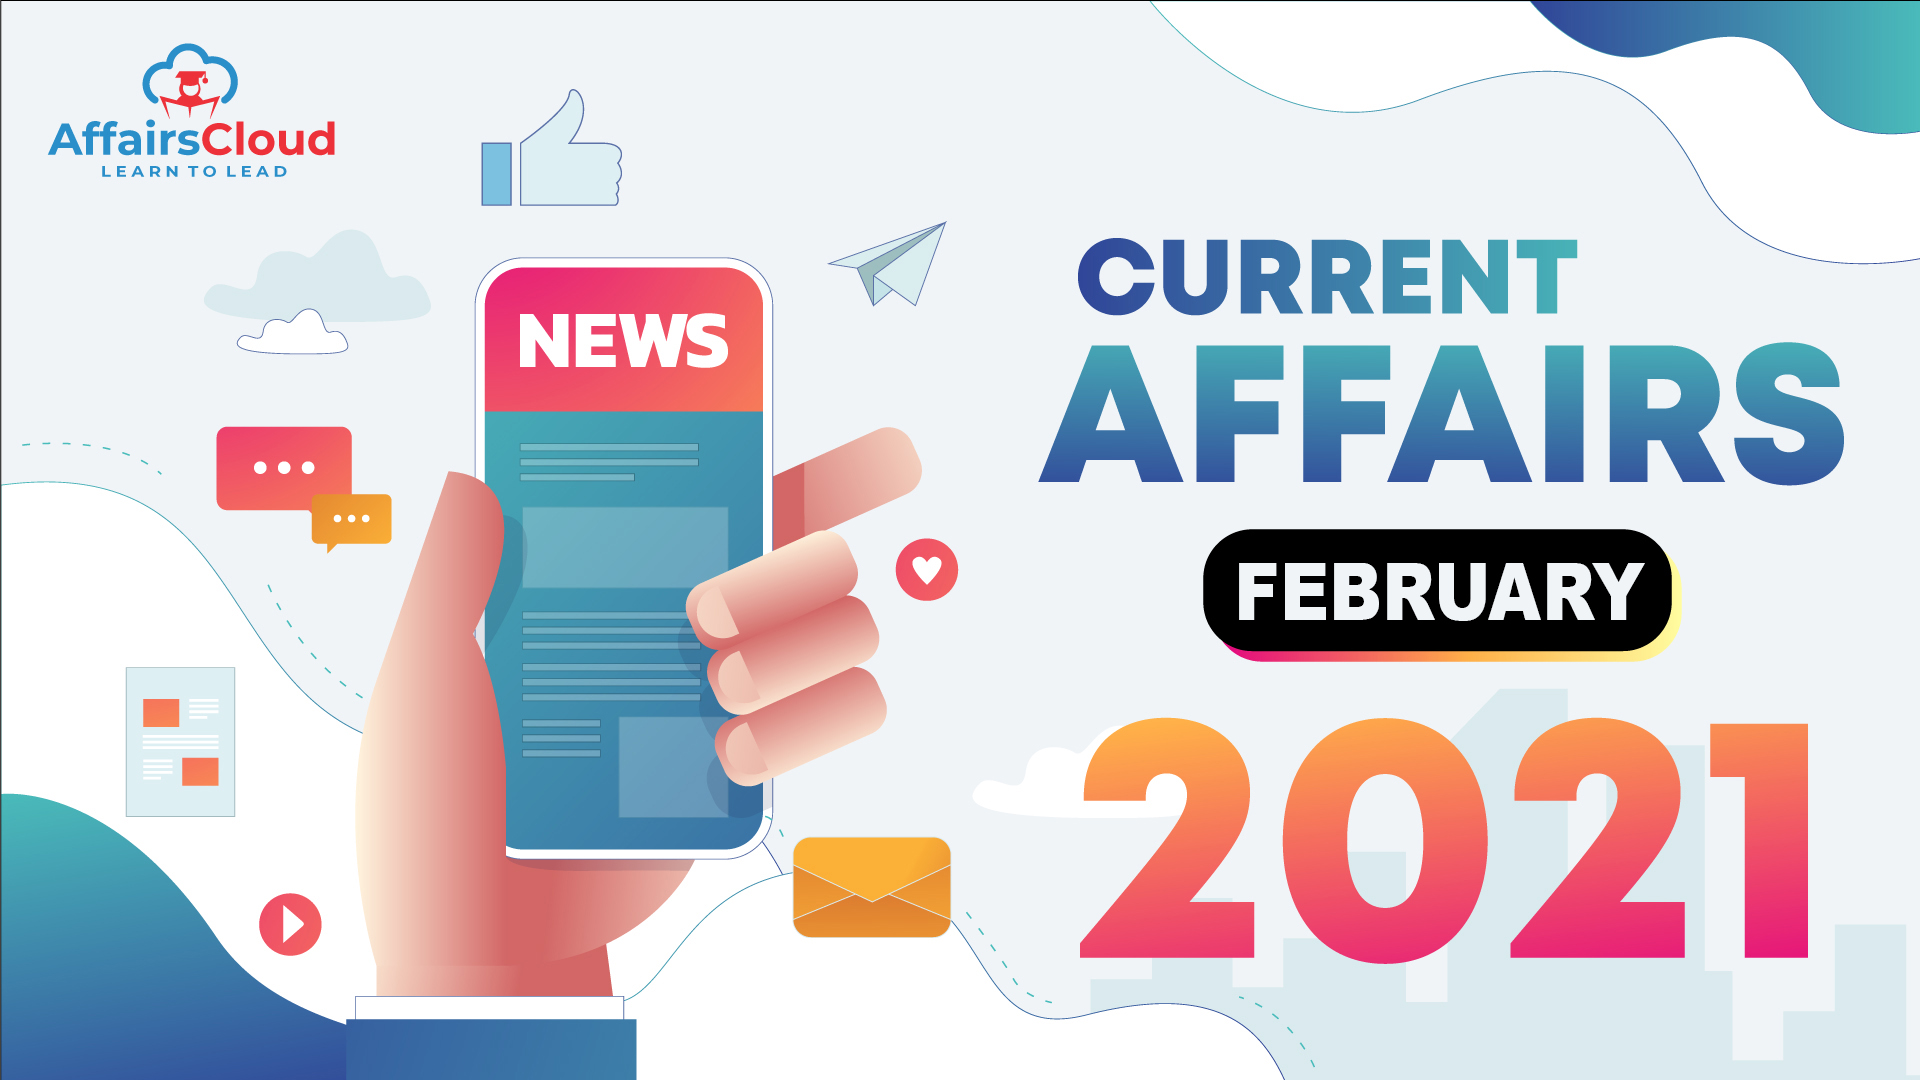 CURRENT-AFFAIRS-MONTHY FEBRUARY-2021